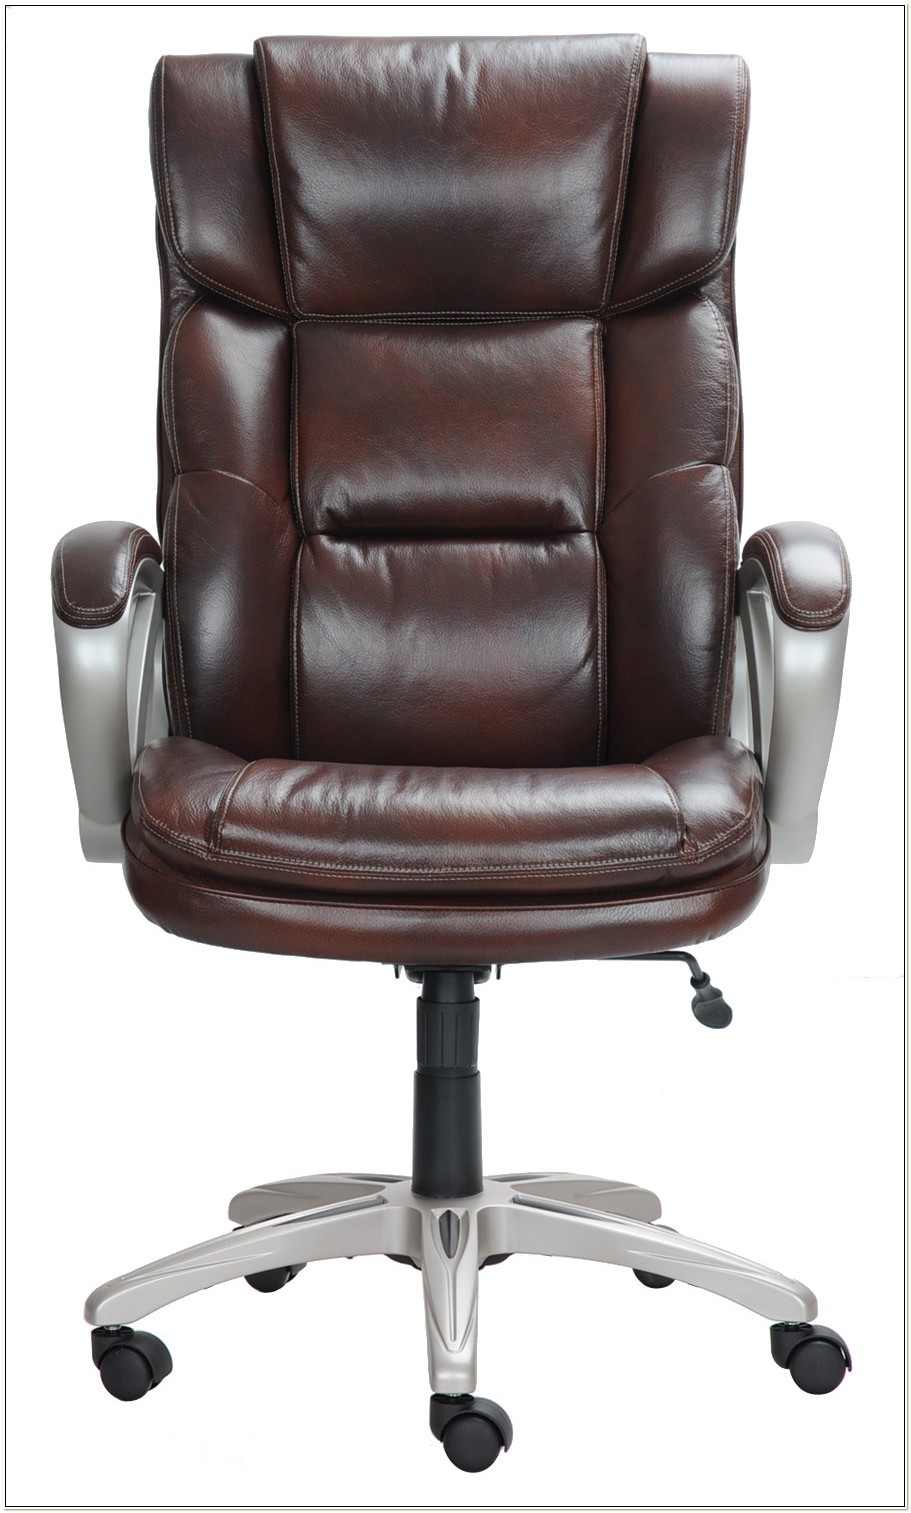 Broyhill Bonded Leather Executive Chair Model 41119